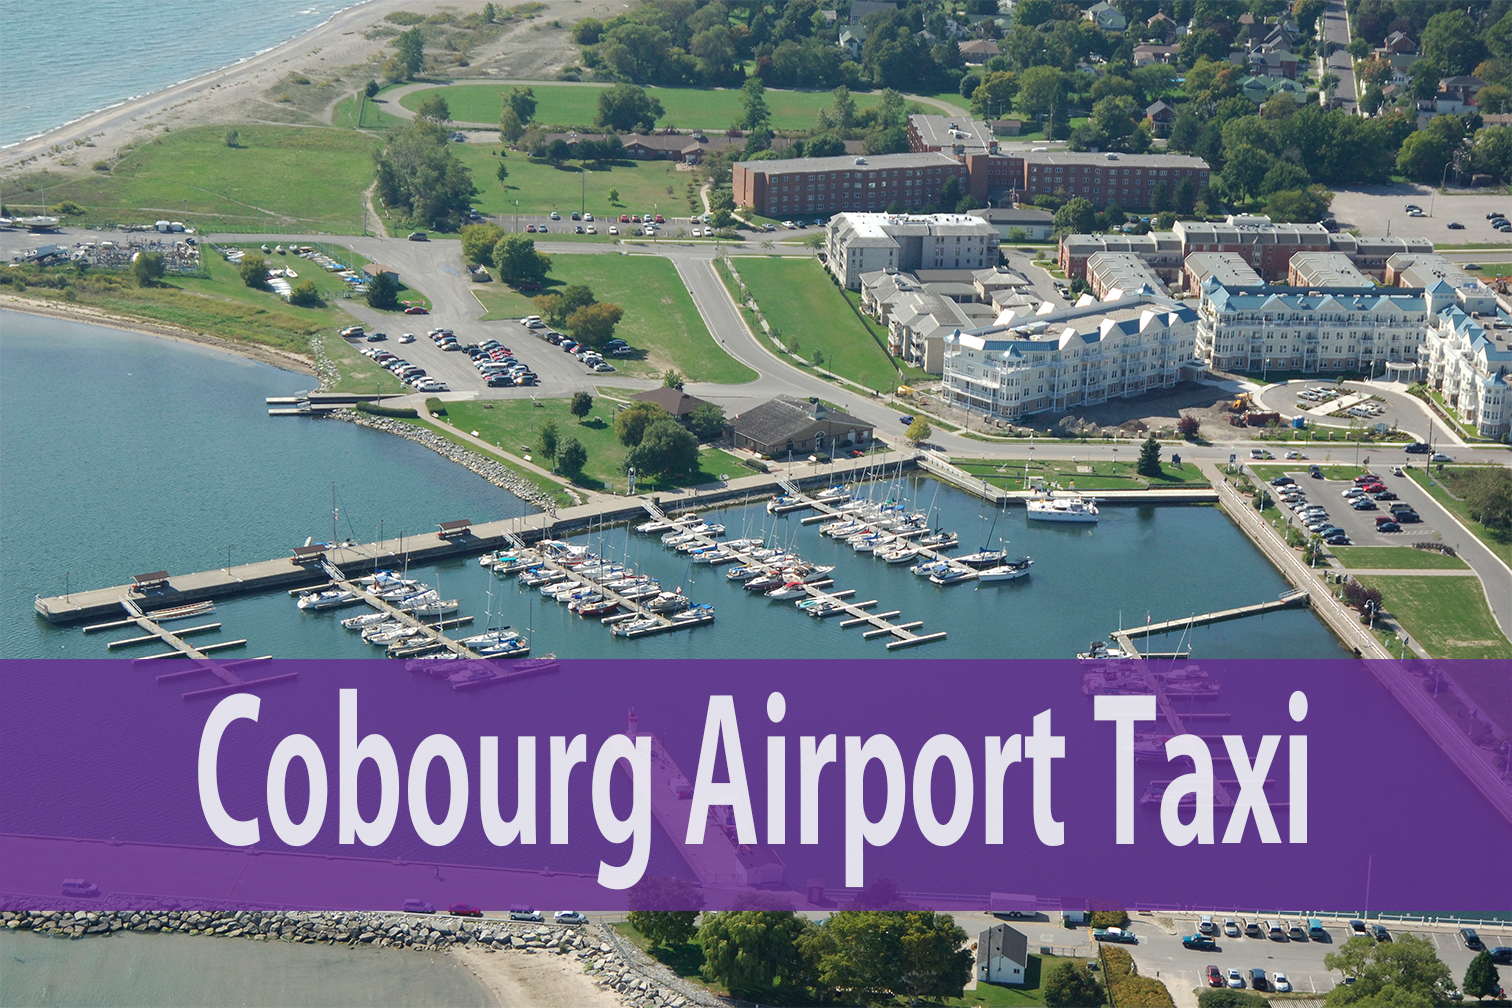 Cobourg Airport Taxi